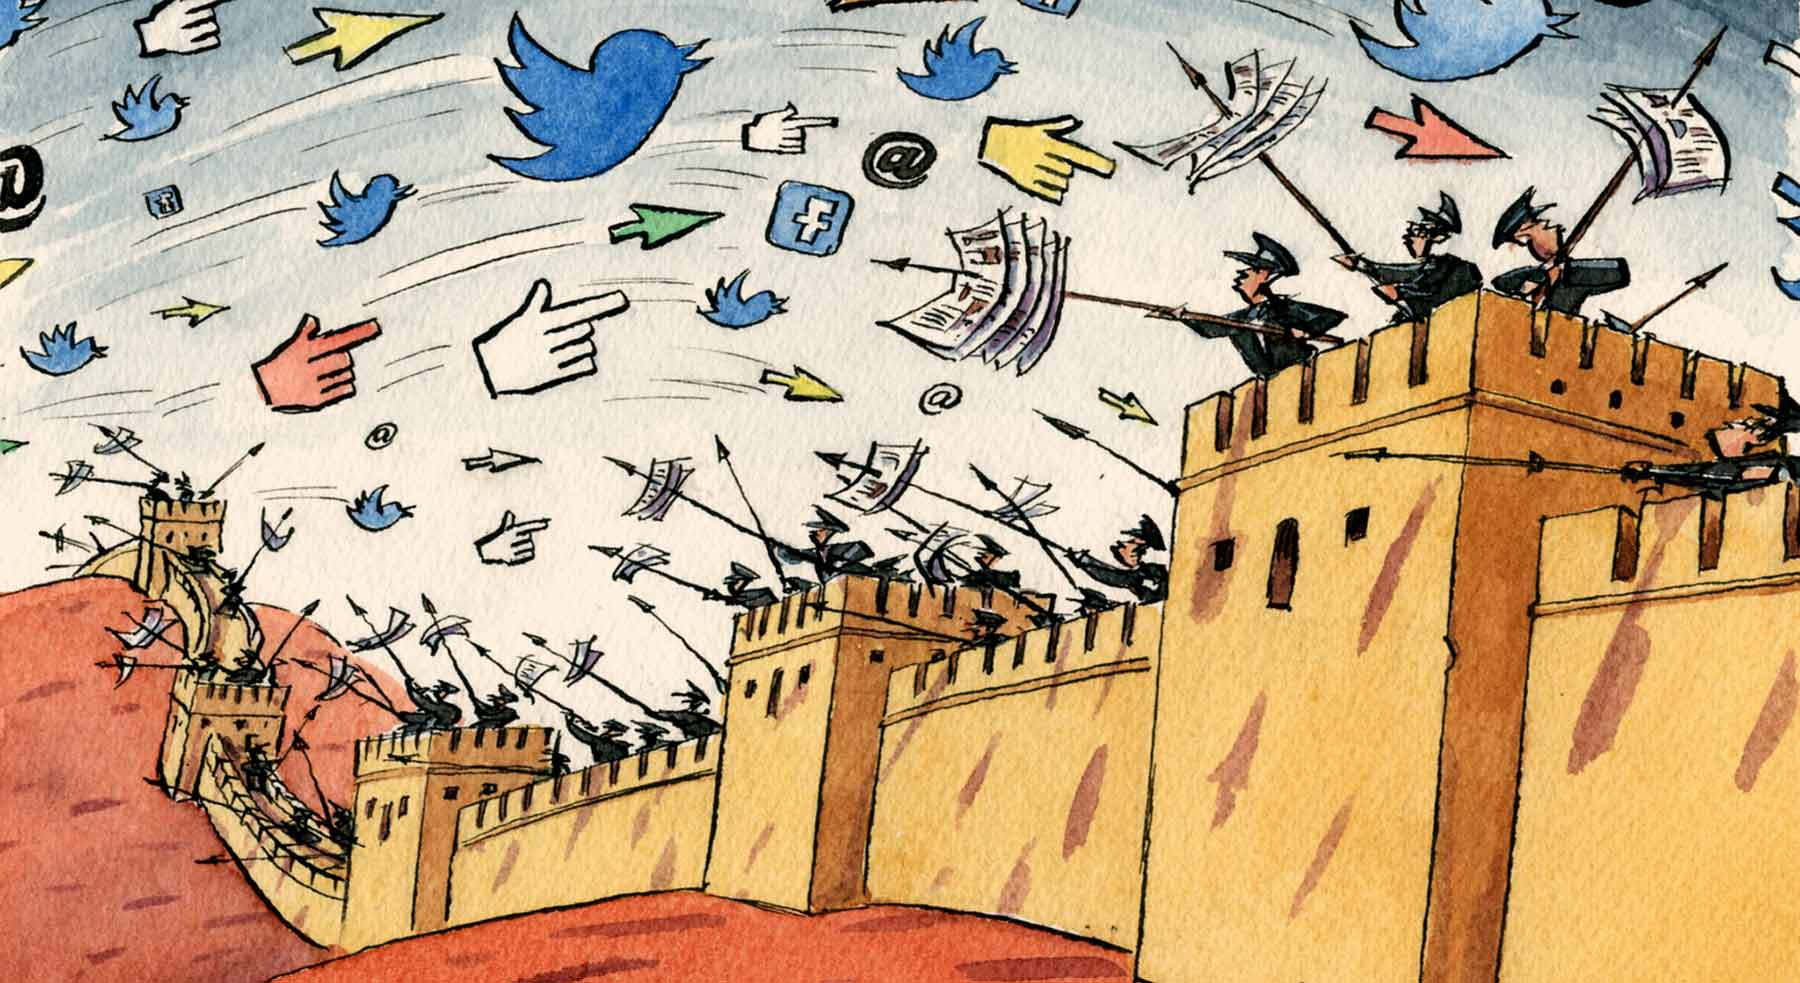 Soldiers mounted along a wall fend off social media attempts to make it through their blockade